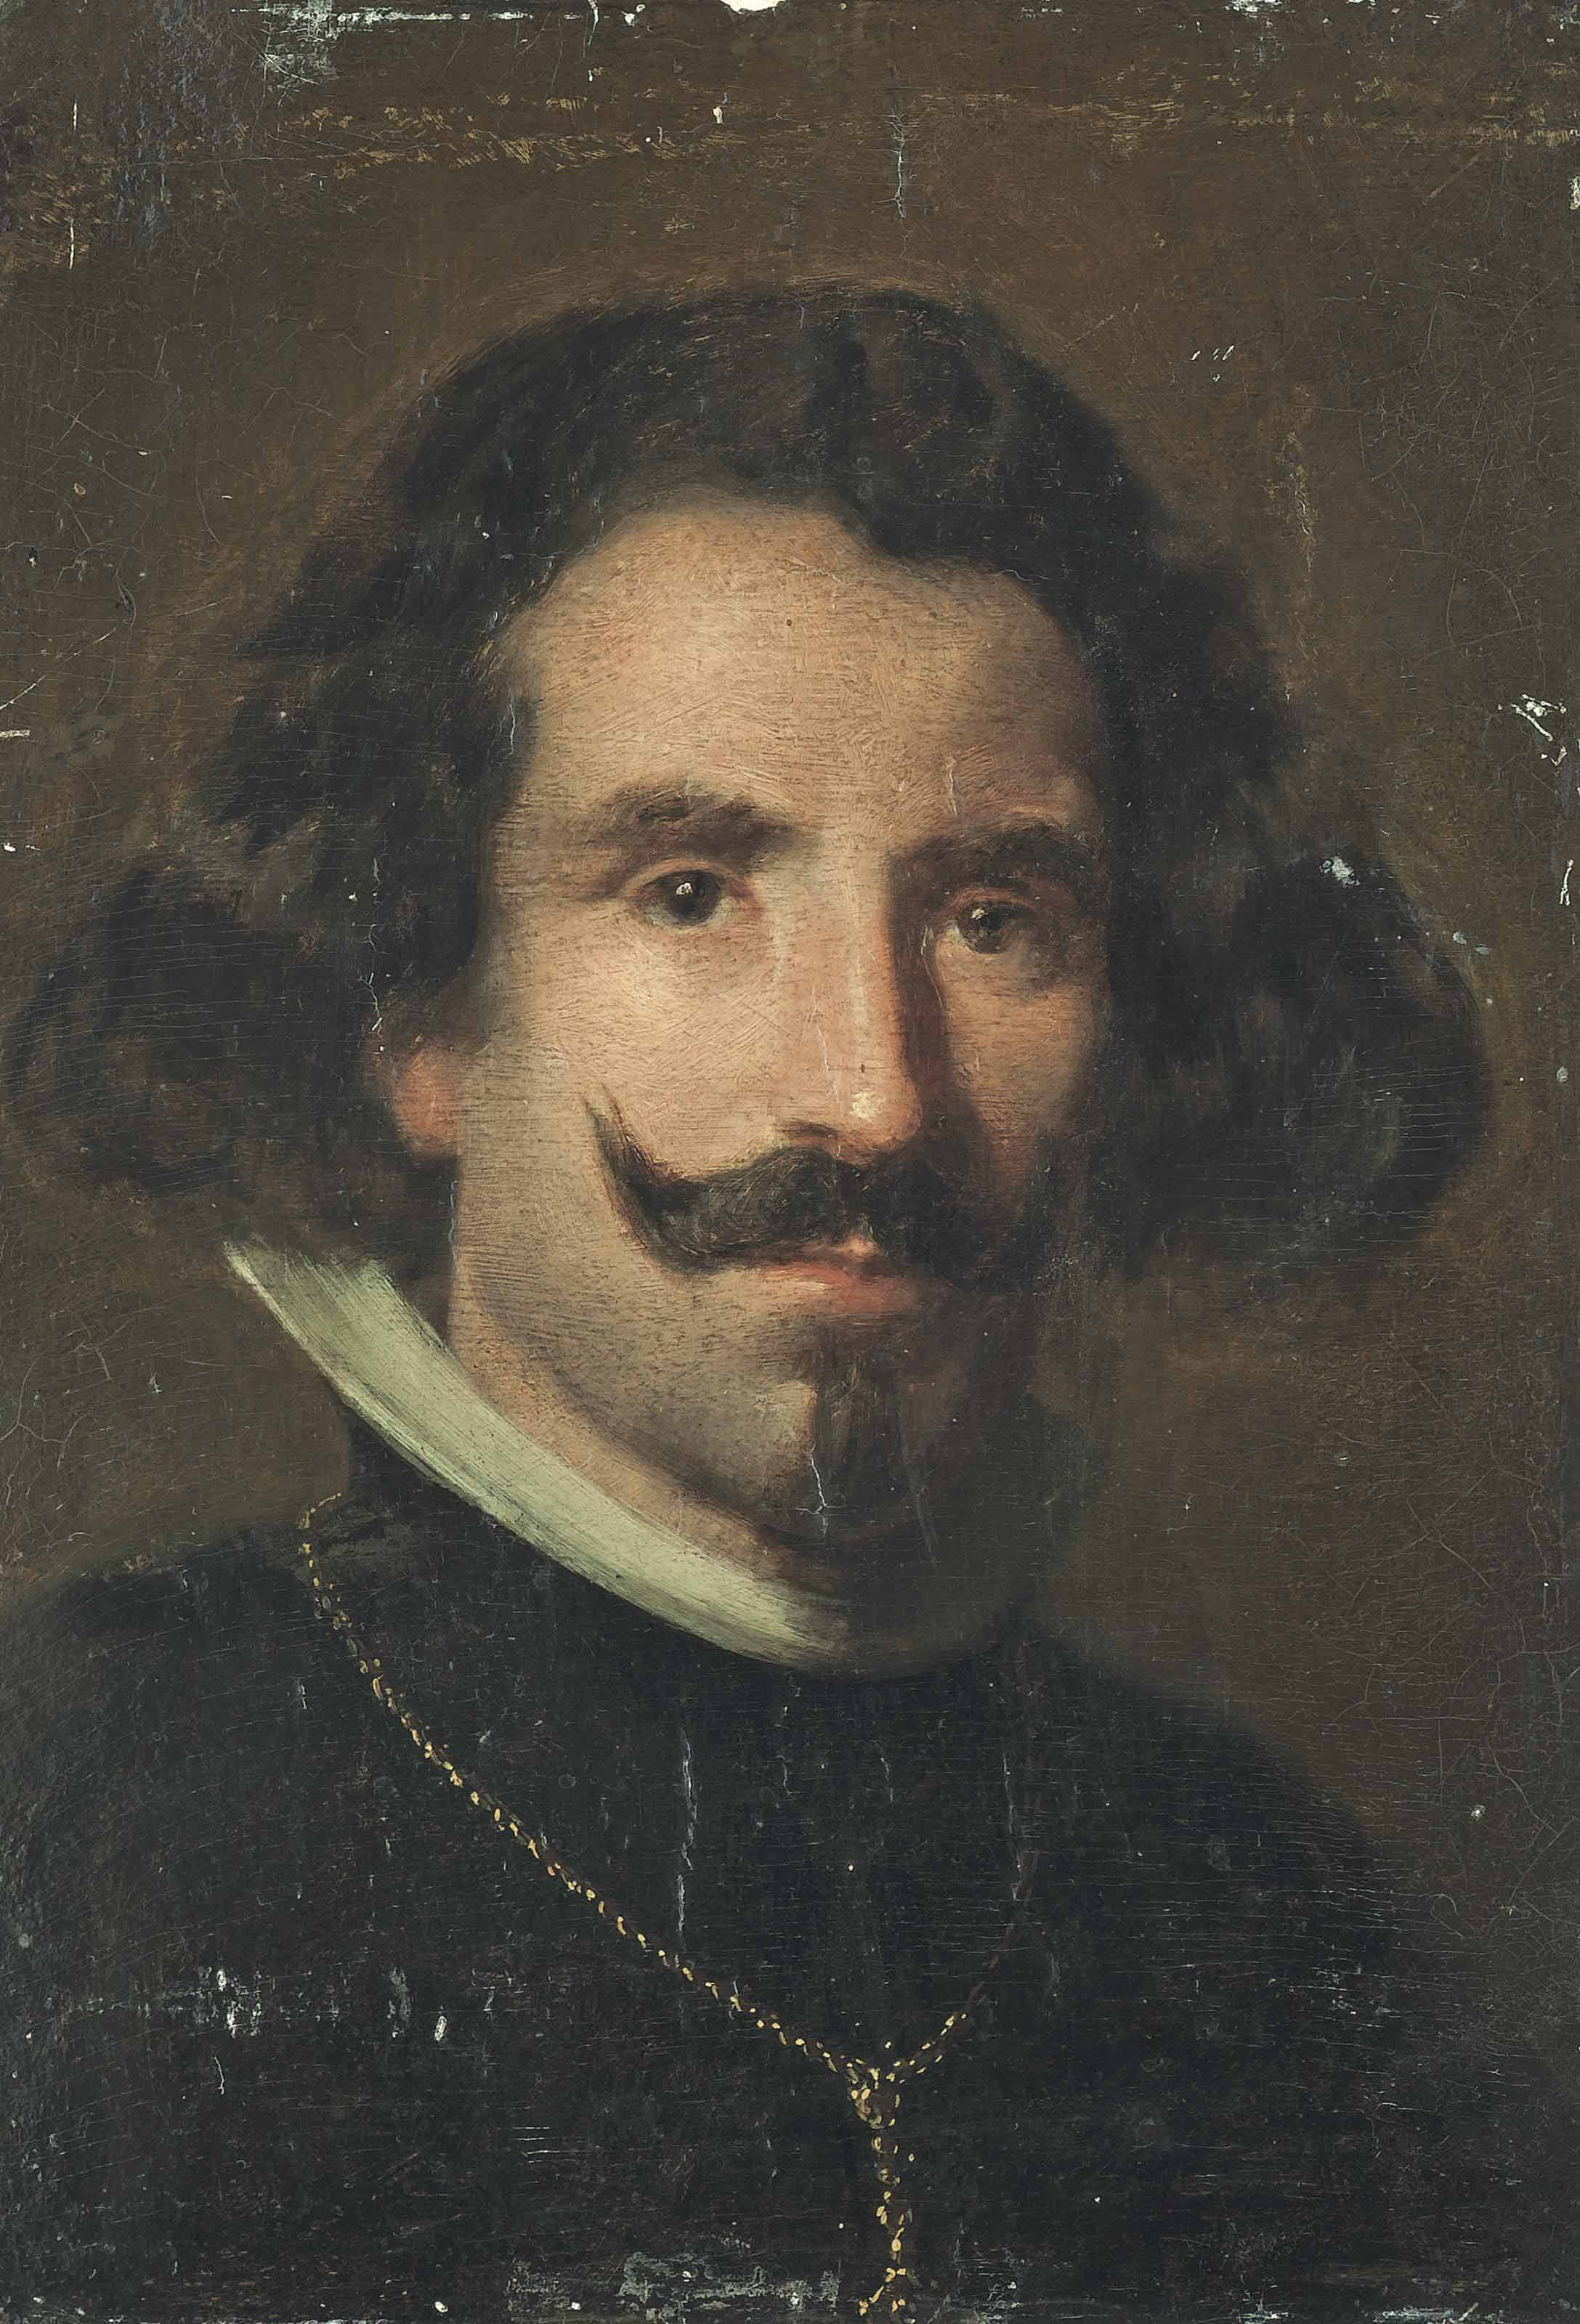 Portrait of Diego Velázquez (1599-1660), bust-length, in a black coat with a gold chain